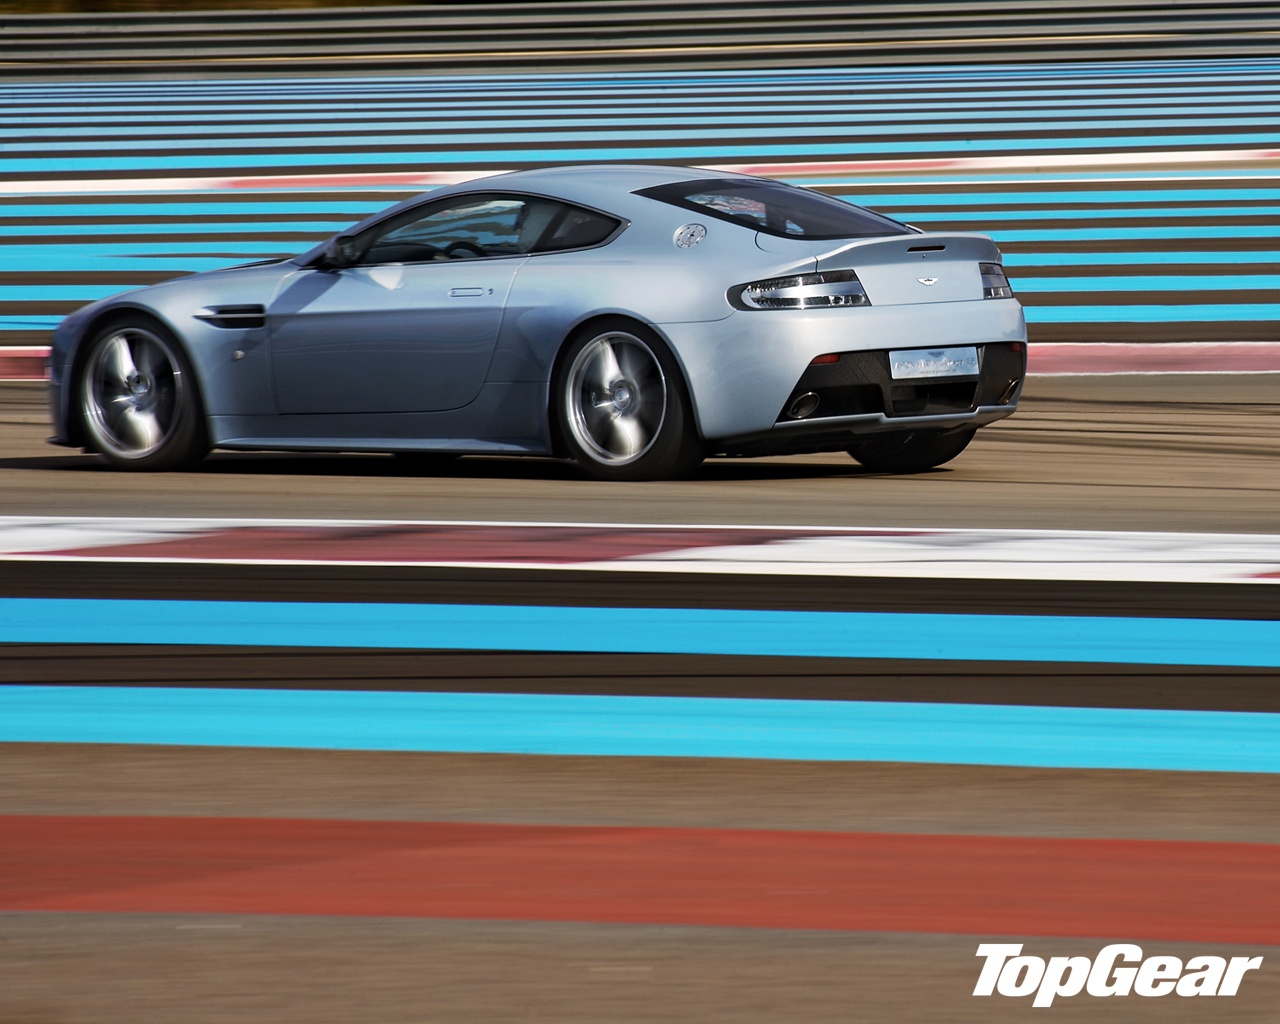 Top Gear Wallpapers Aston Martin V12 Vantage At The Paul Ricard Race Track Teamspeed Com